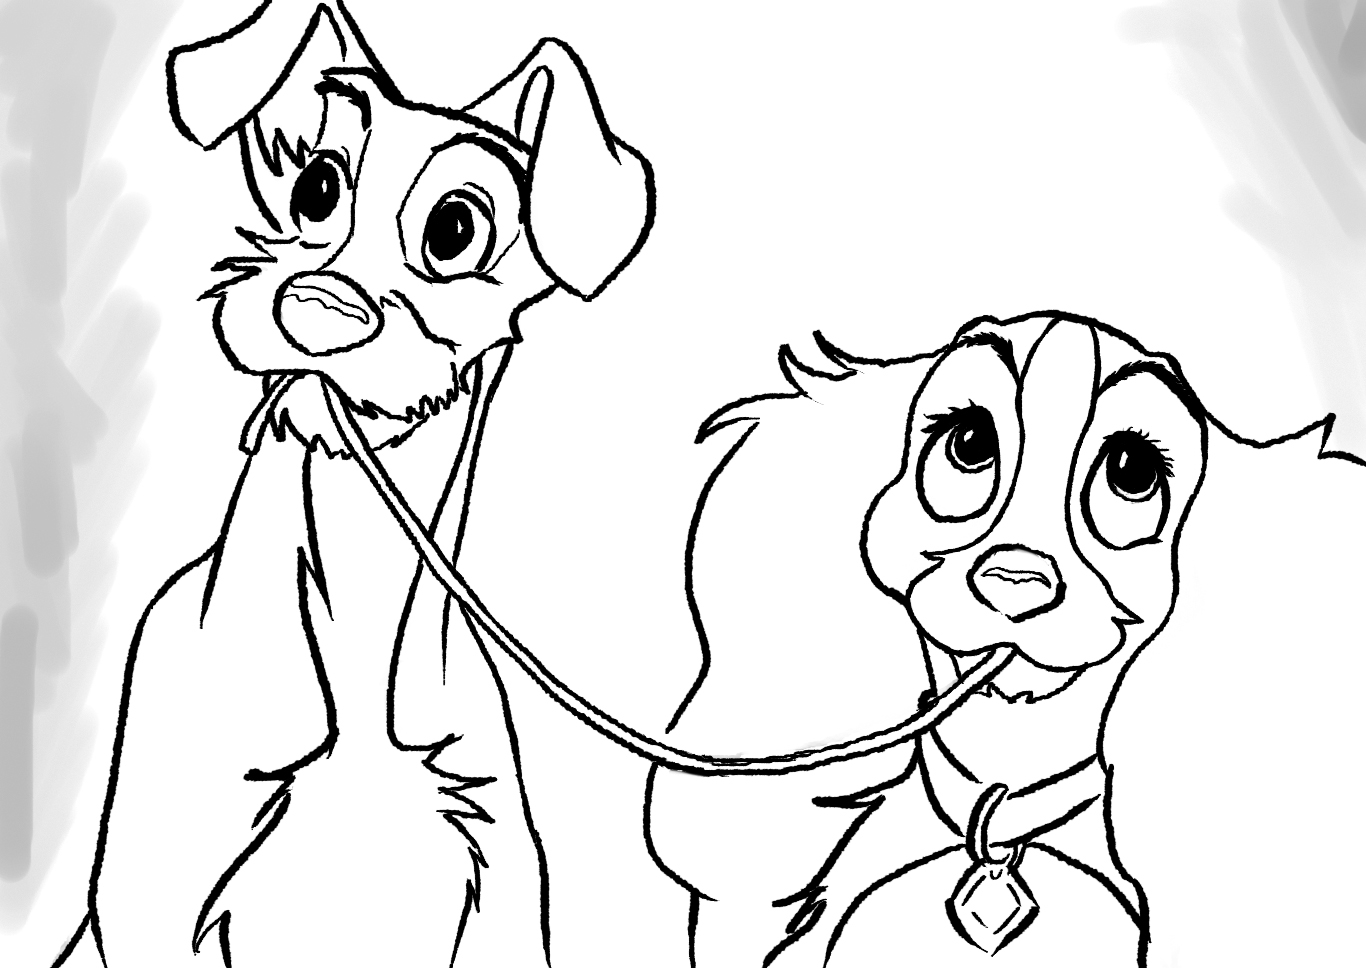 disneyladyandthetramp explore disneyladyandthetramp on deviantart